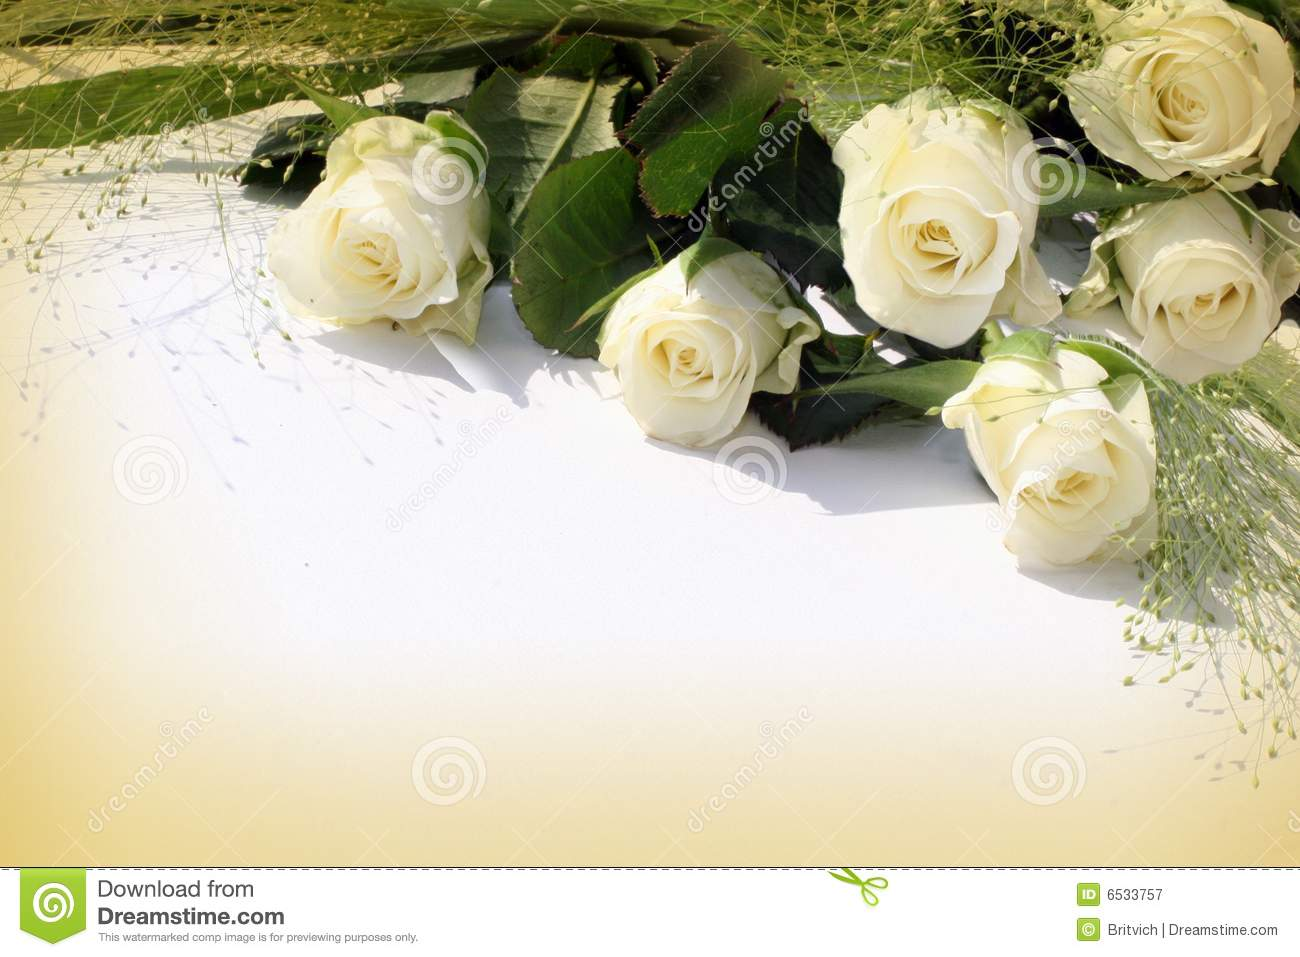 white rose dating service